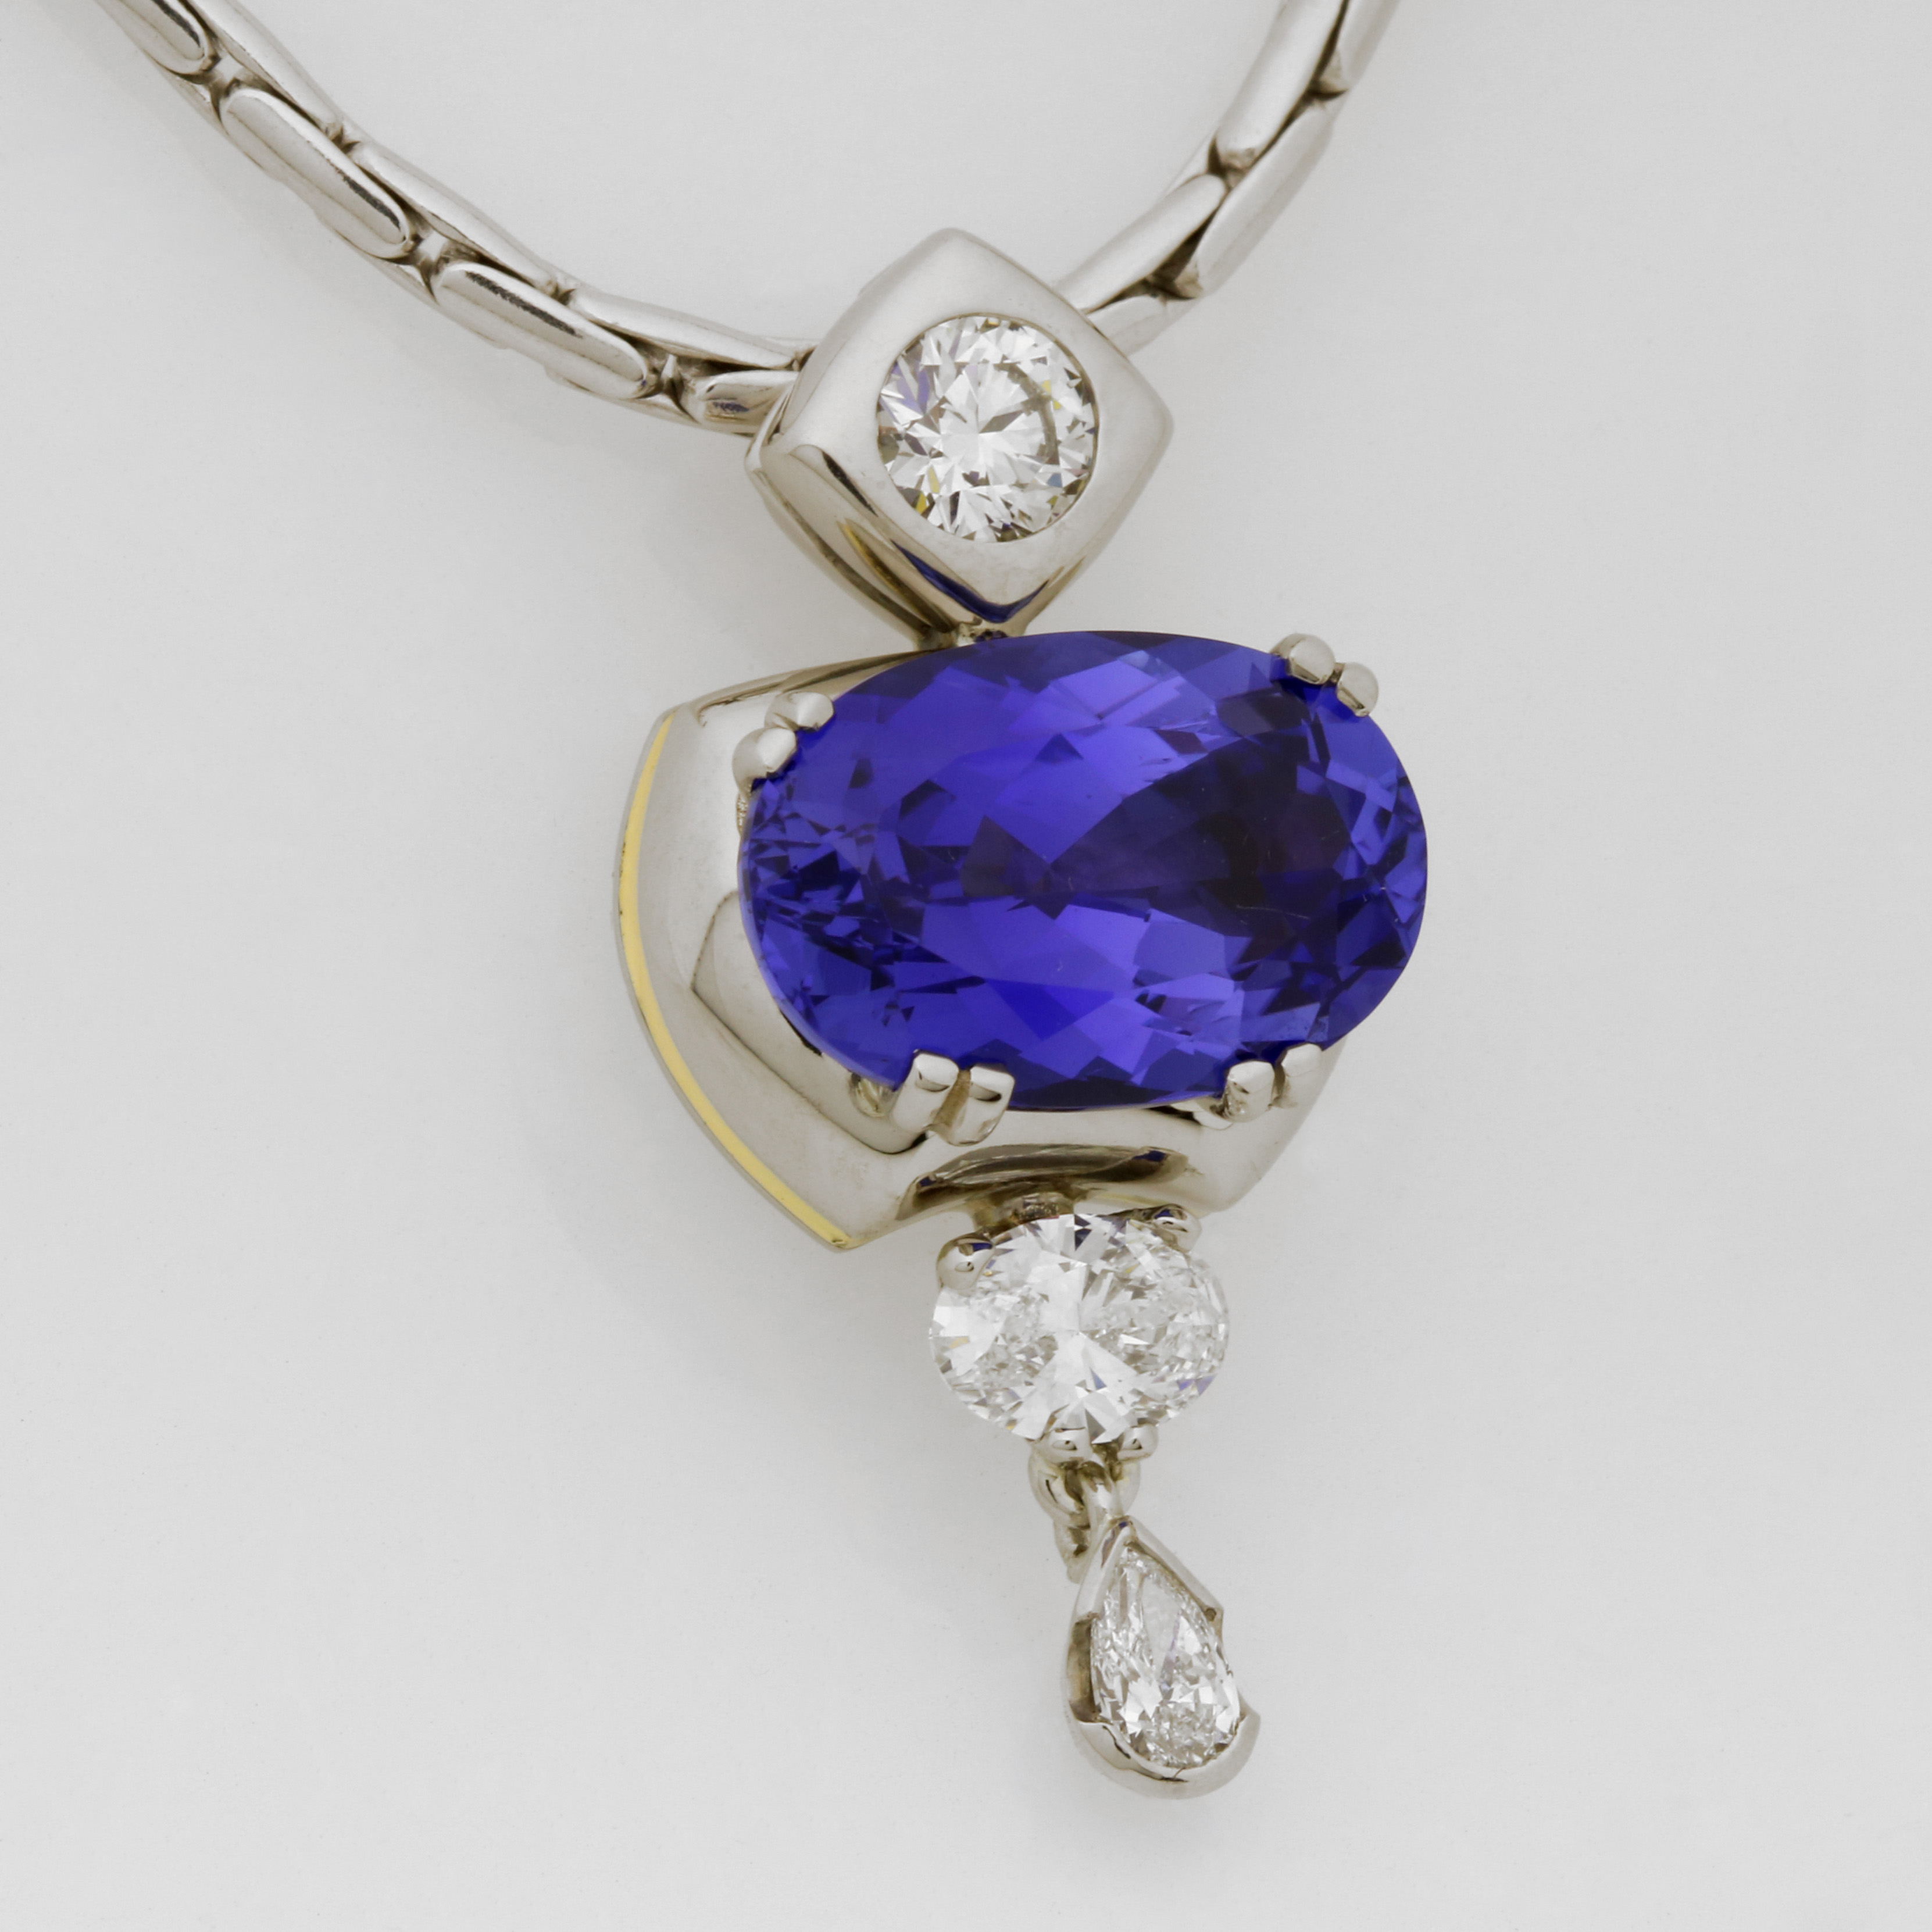 Handmade Palladium & 18ct Yellow Gold Tanzanite & Diamond Pendant